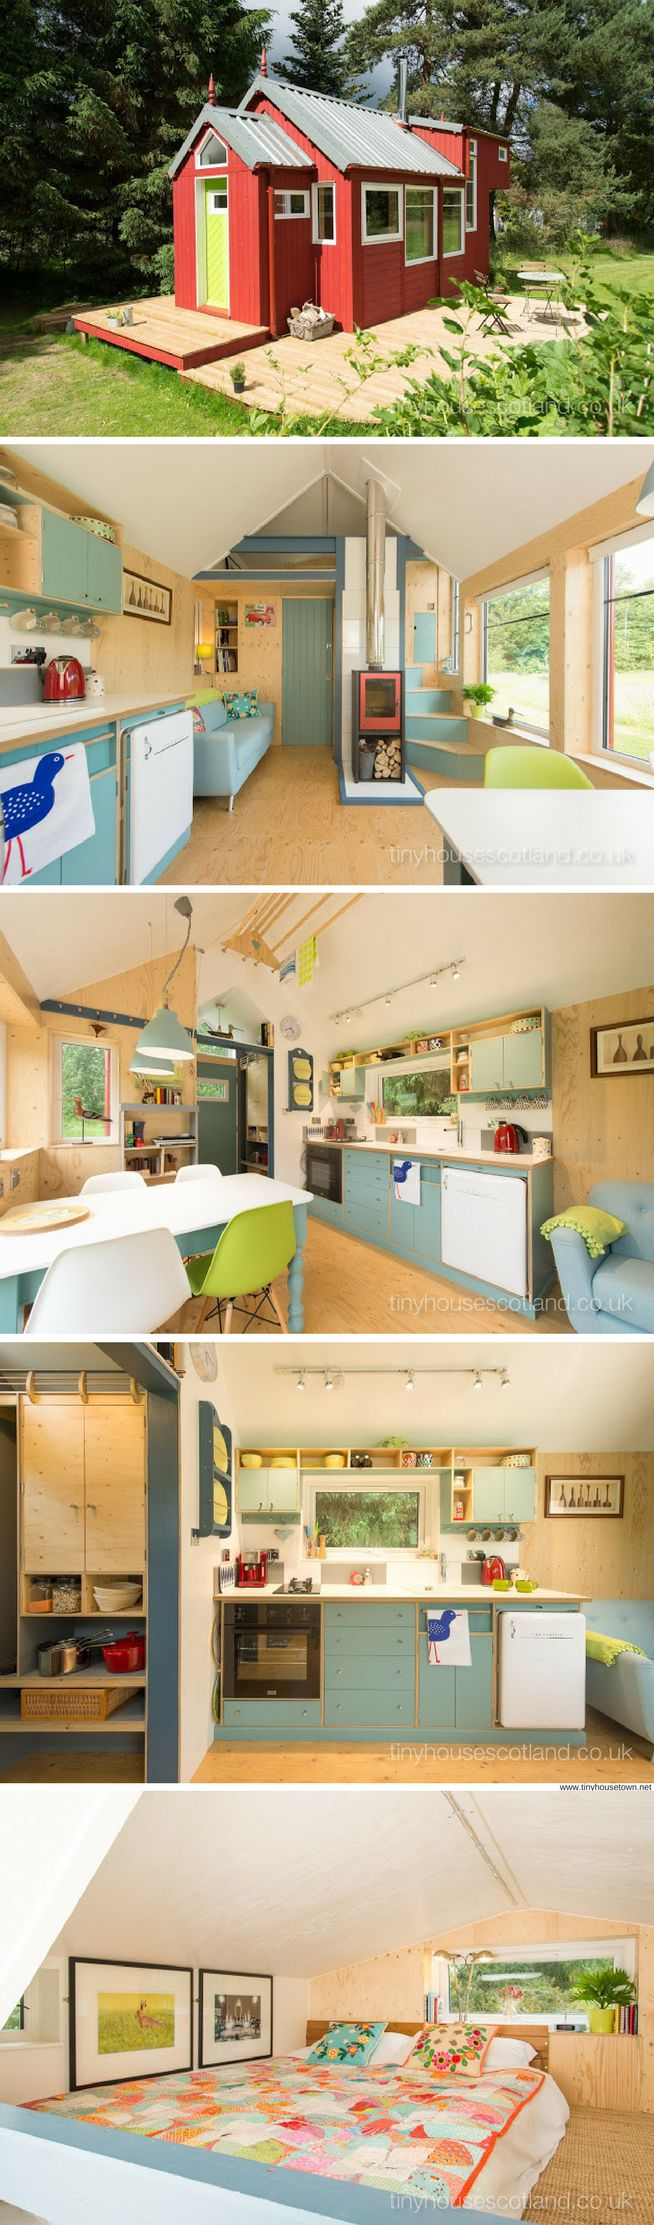 The NestHouse from Tiny House Scotland